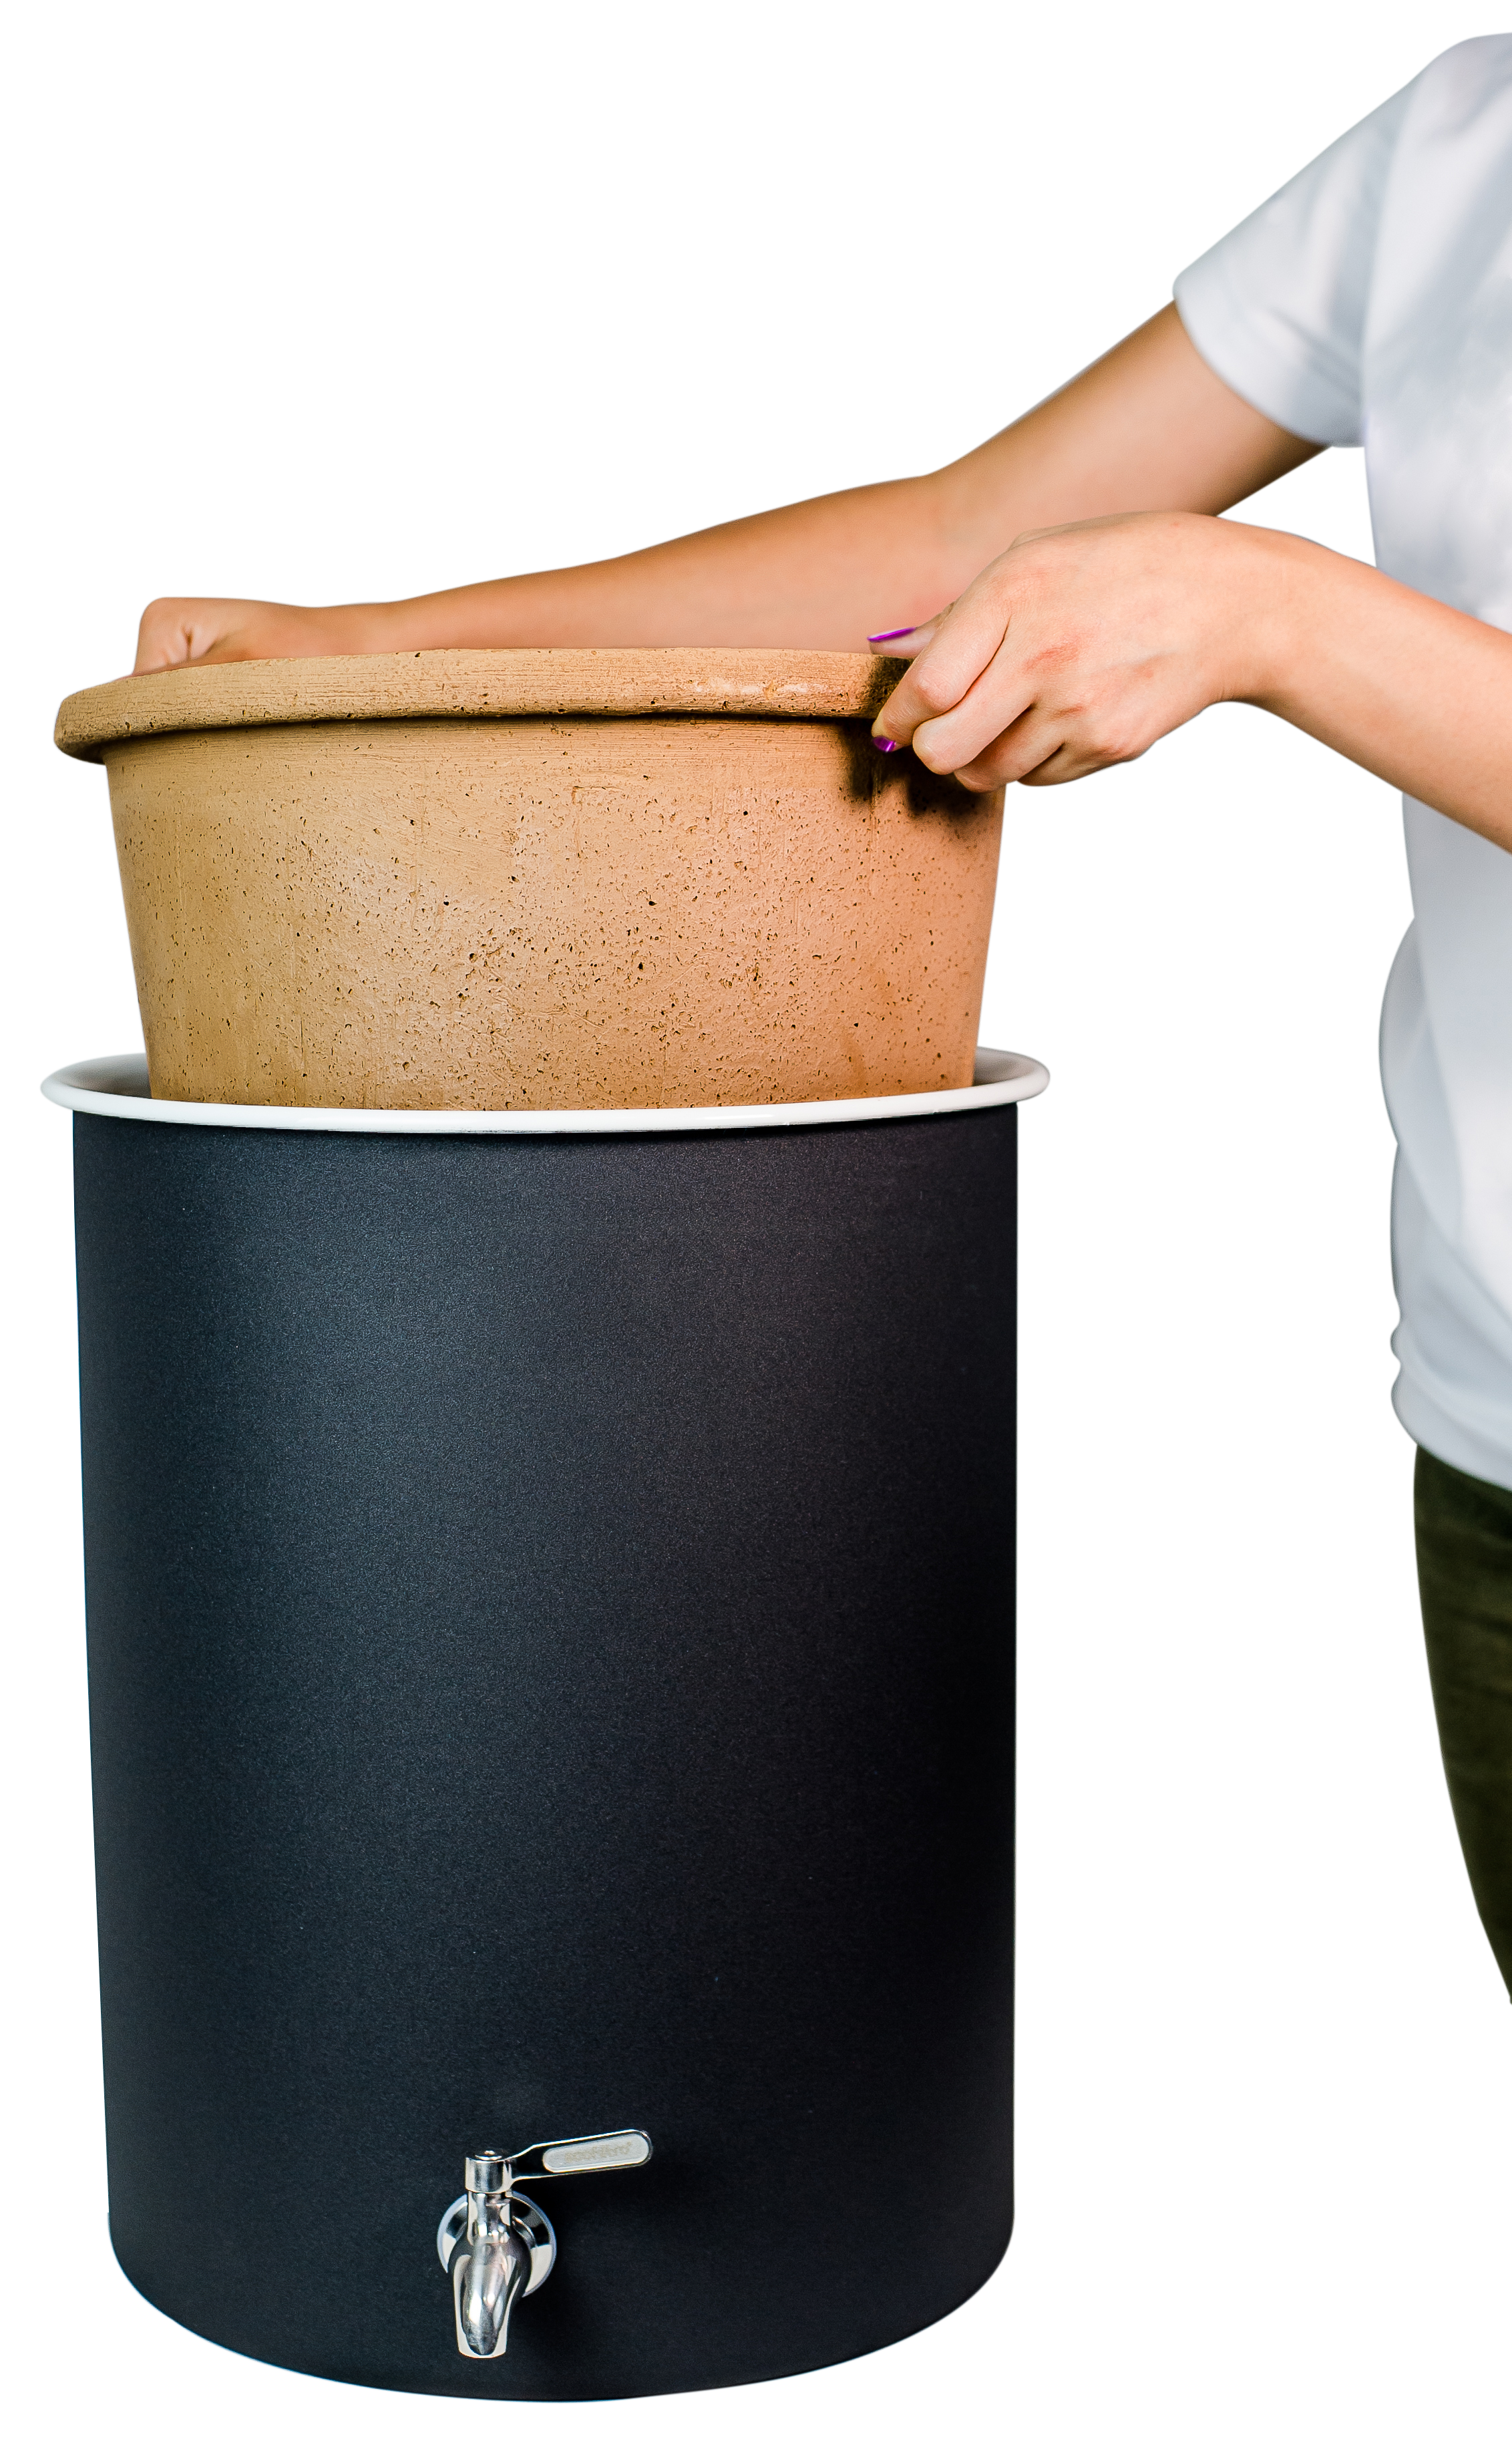 Step 1 - Carefully place the filter unit inside the Ecofilter. It is very important to hold it only by the edges.